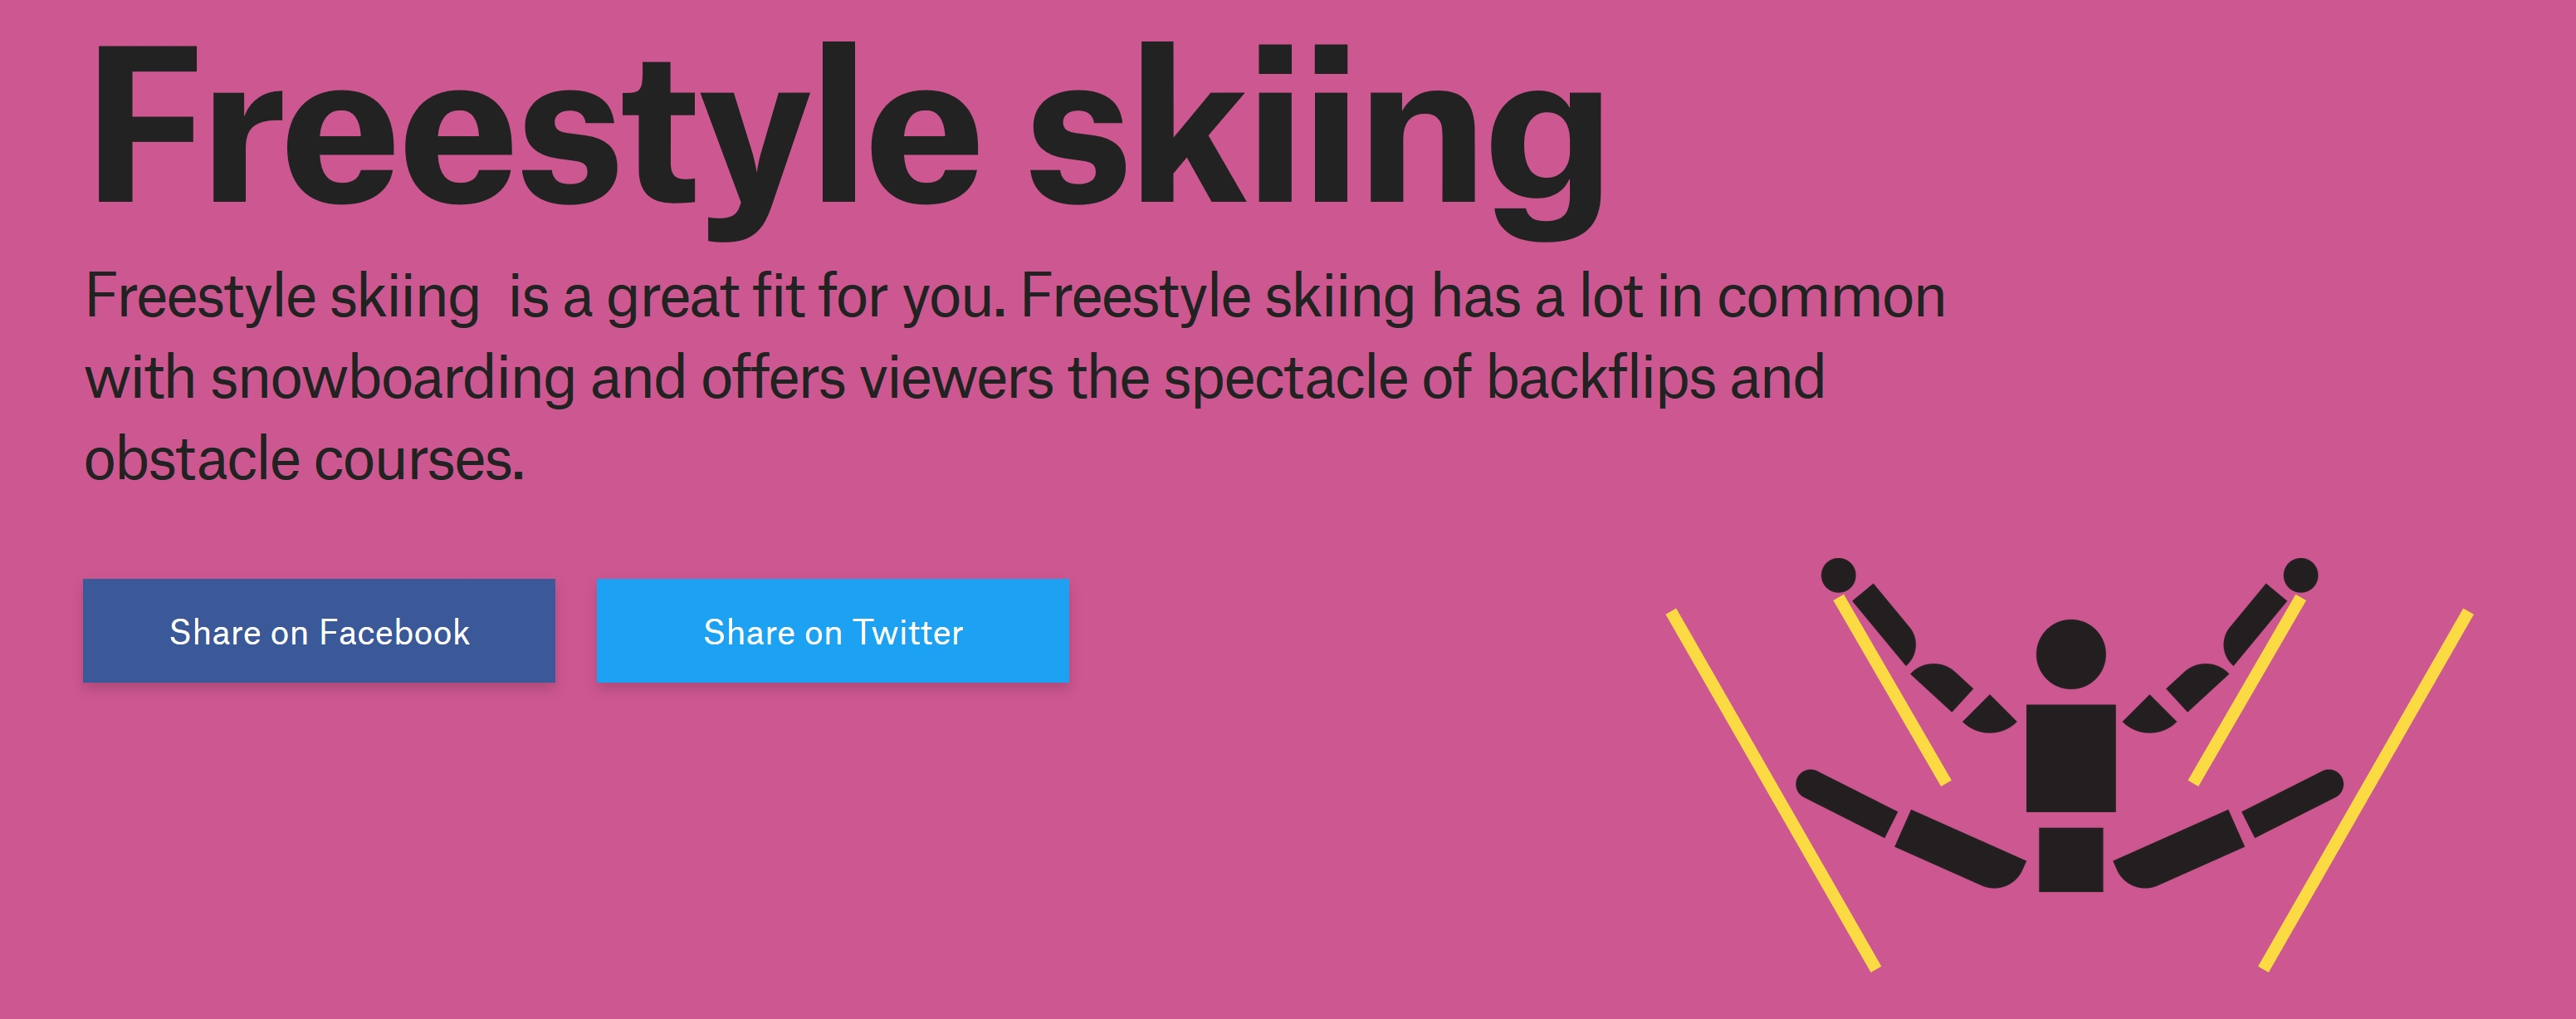 My result is below. Freestyle skiing? Sounds good on paper but it would  lead to an untimely death on the slopes, I fear.